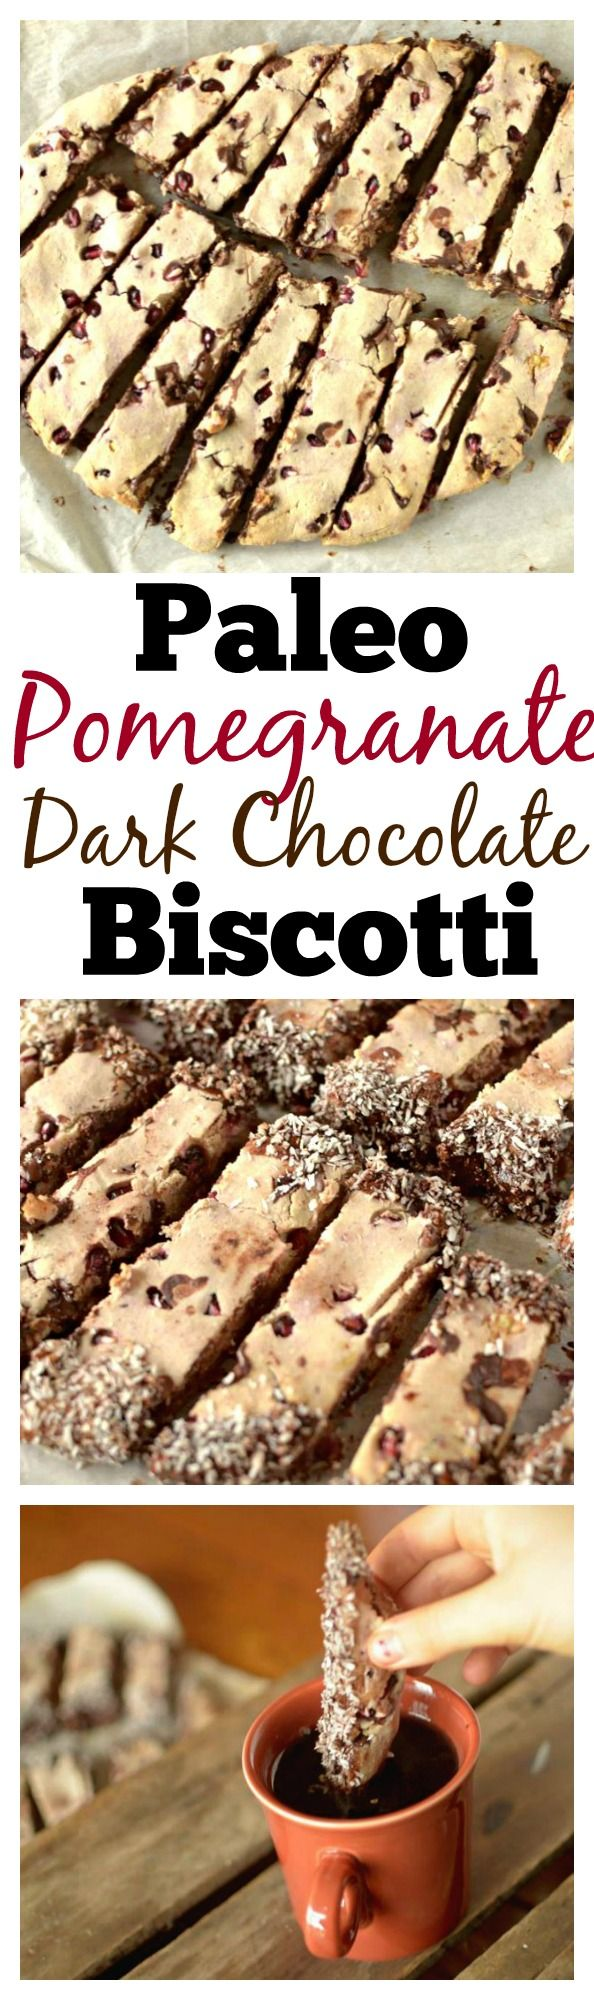 Looking for a healthy but tasty holiday cookie this season? Try these grain-free Pomegranate and Dark Chocolate Biscotti with a paleo and vegan option!